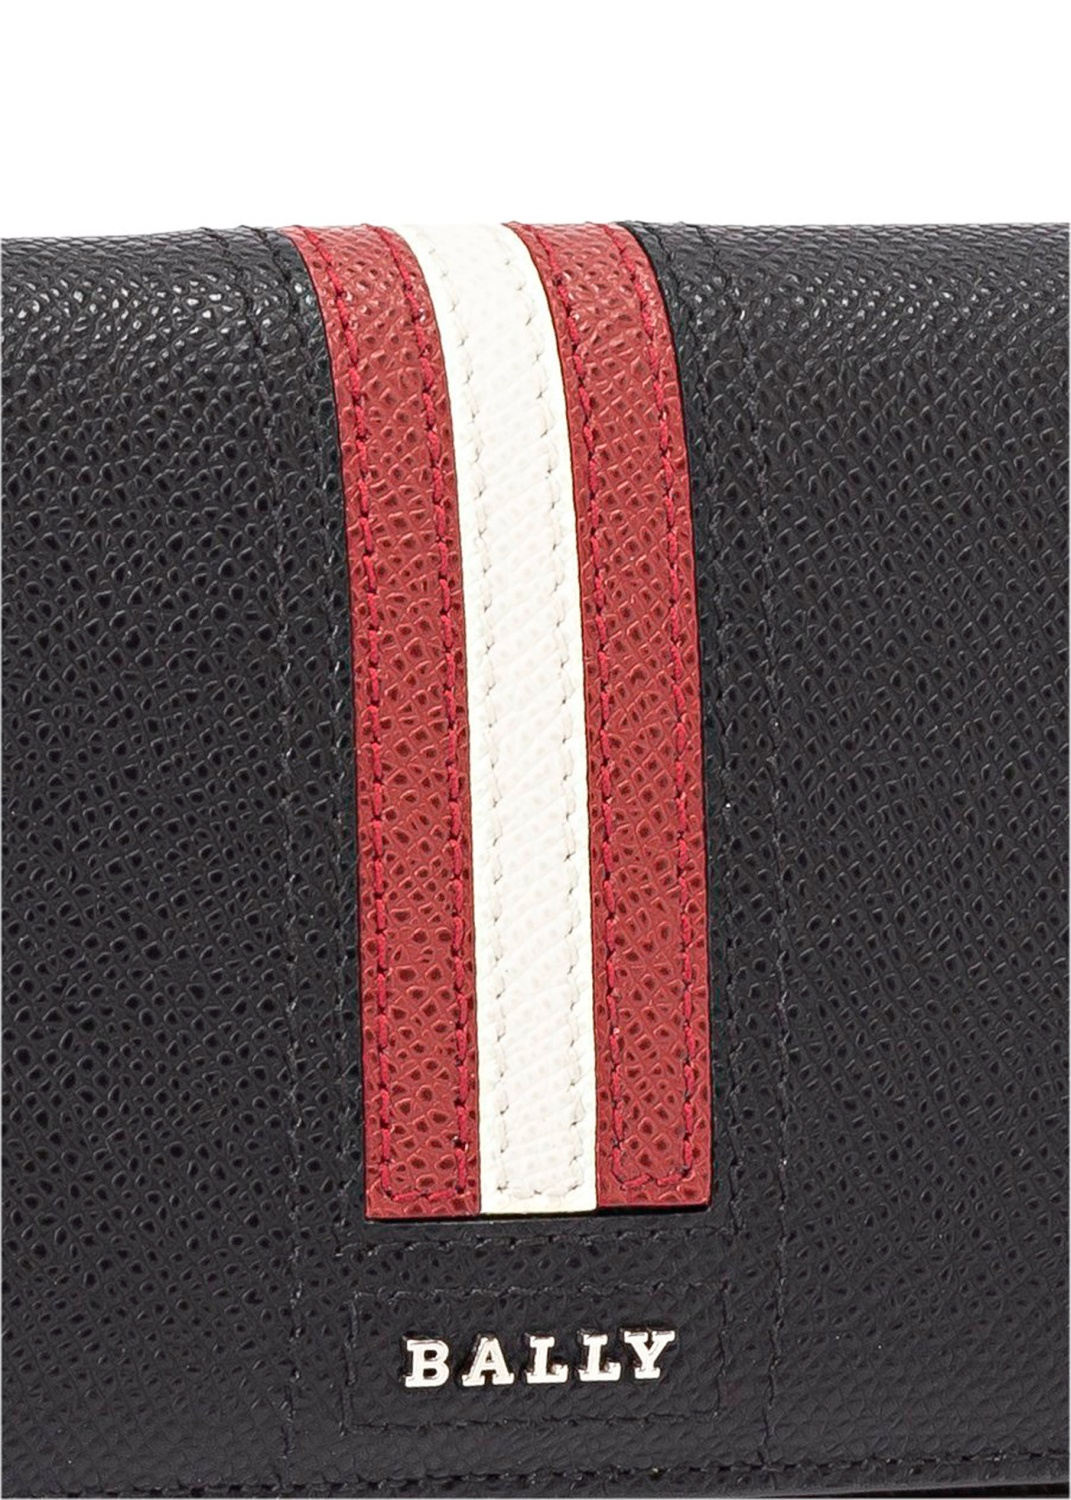 TALIRO.LT/10 CONTINENTAL WALLET image number 2